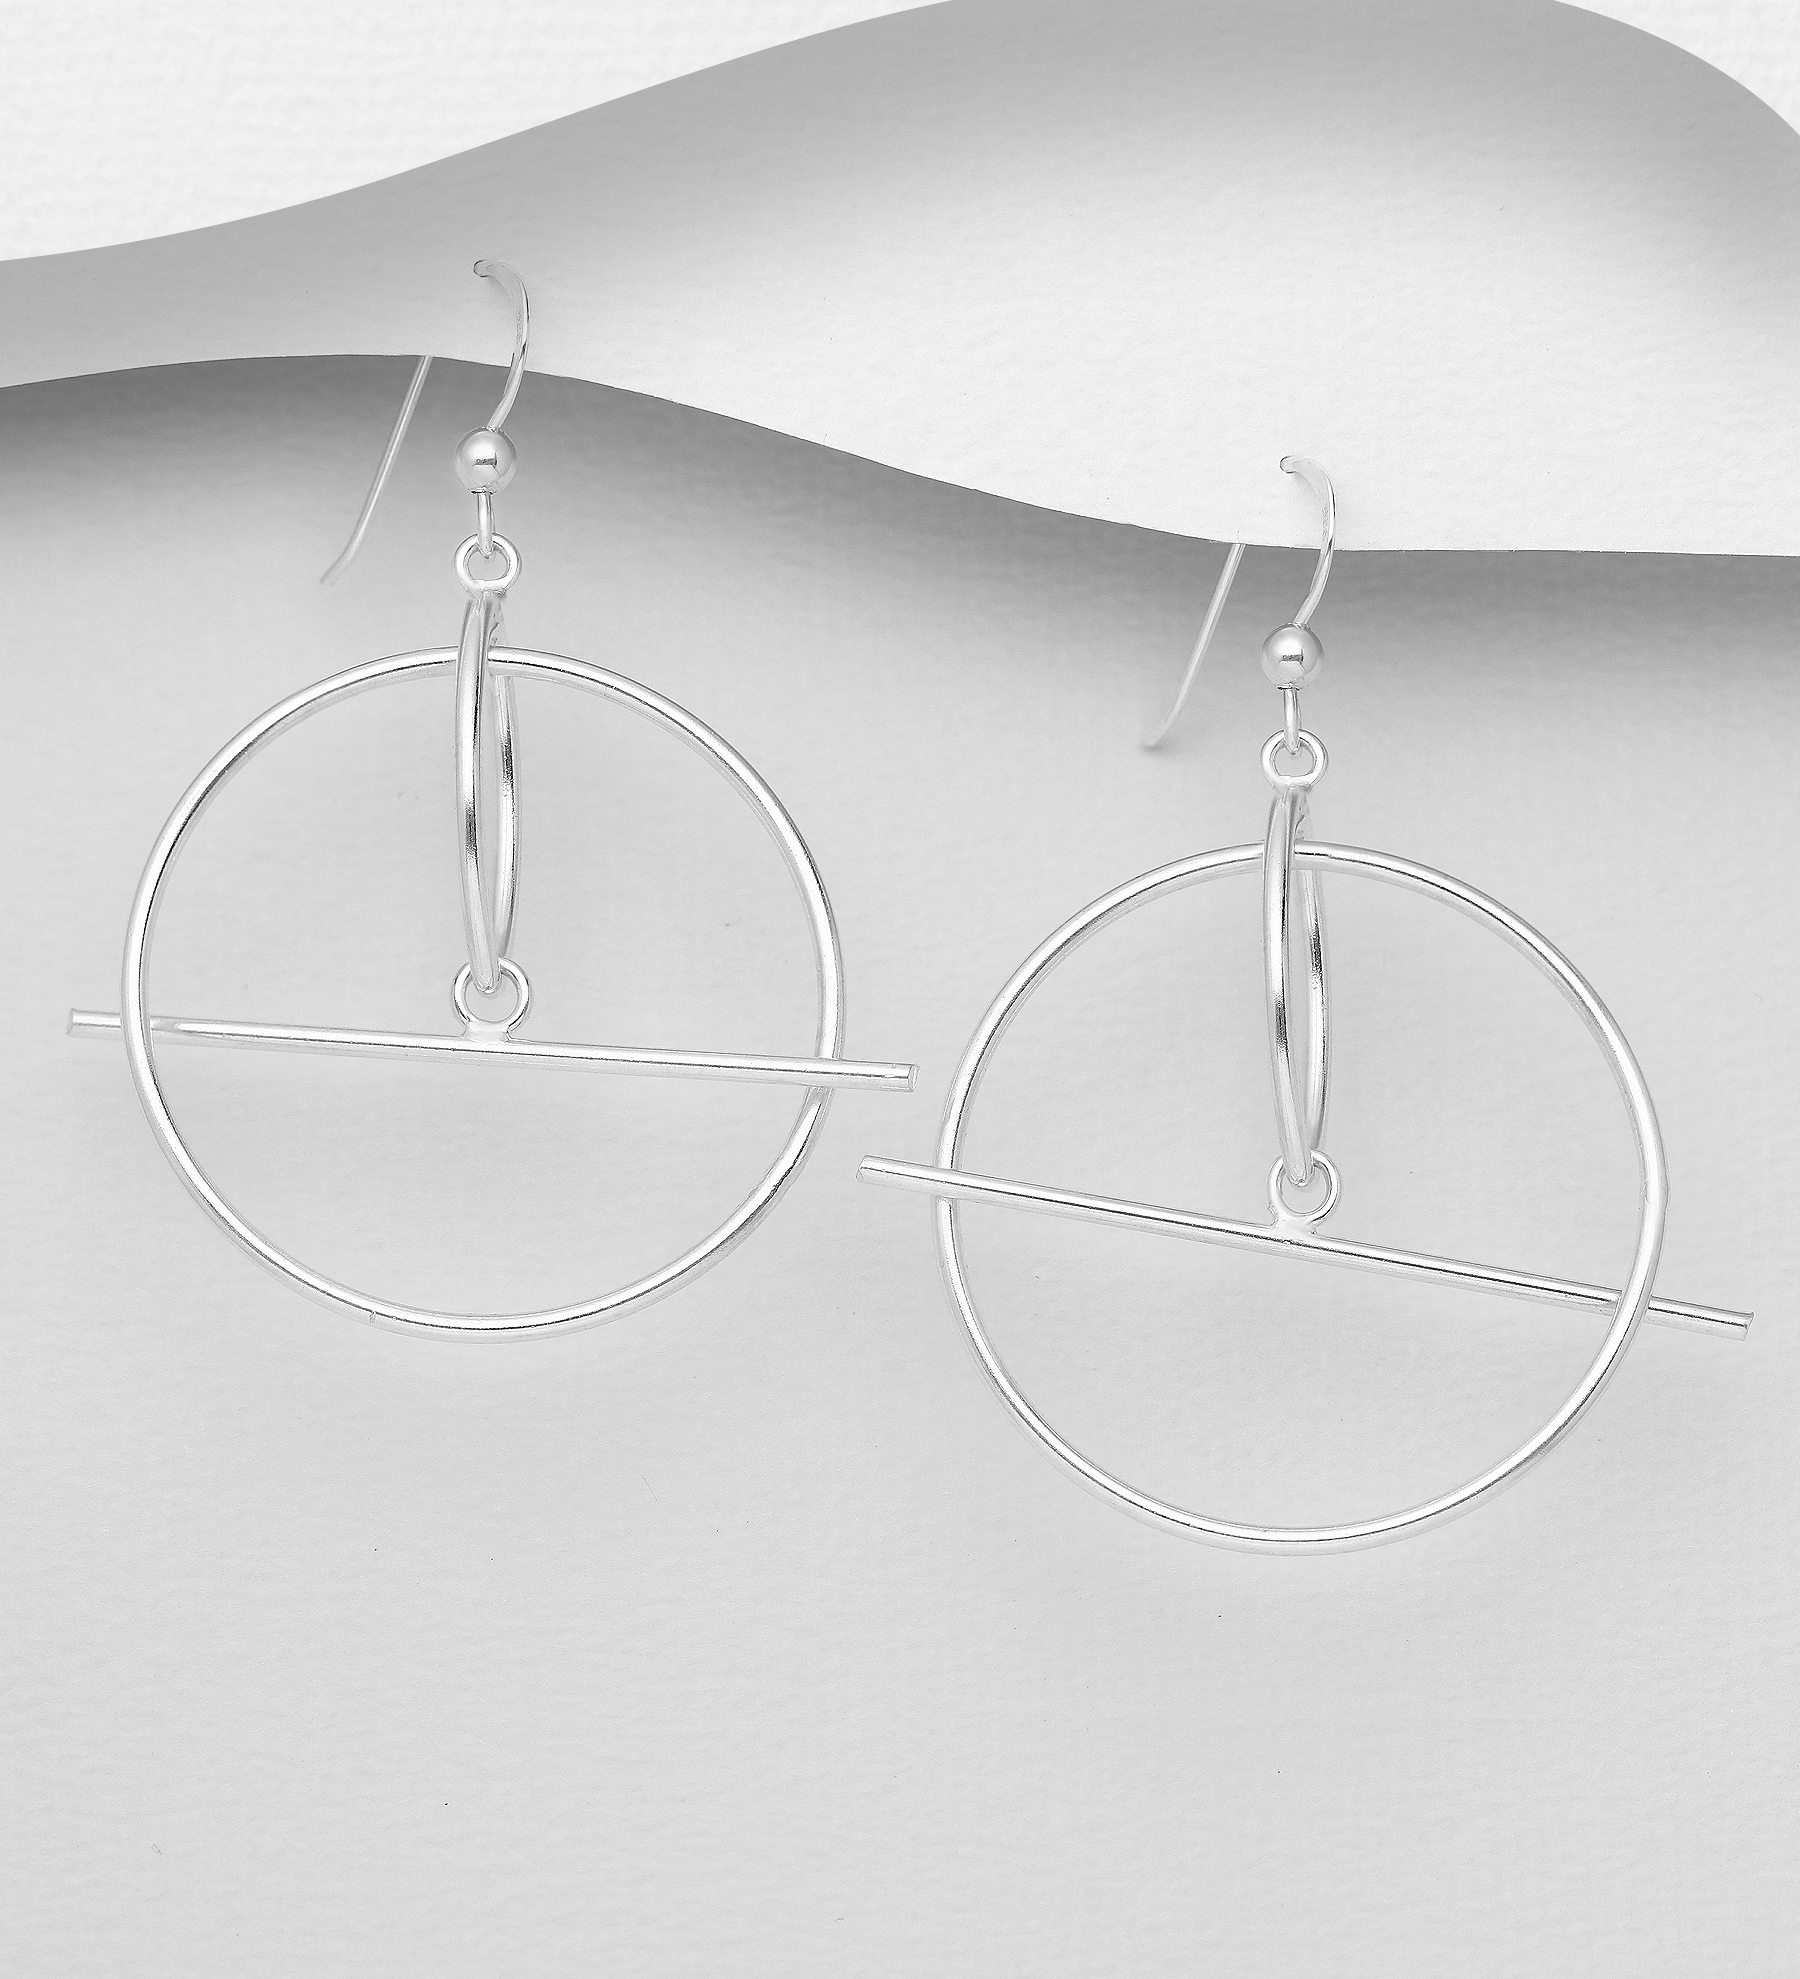 706-30674 - 925 Sterling Silver Bar and Circle Hook Earrings